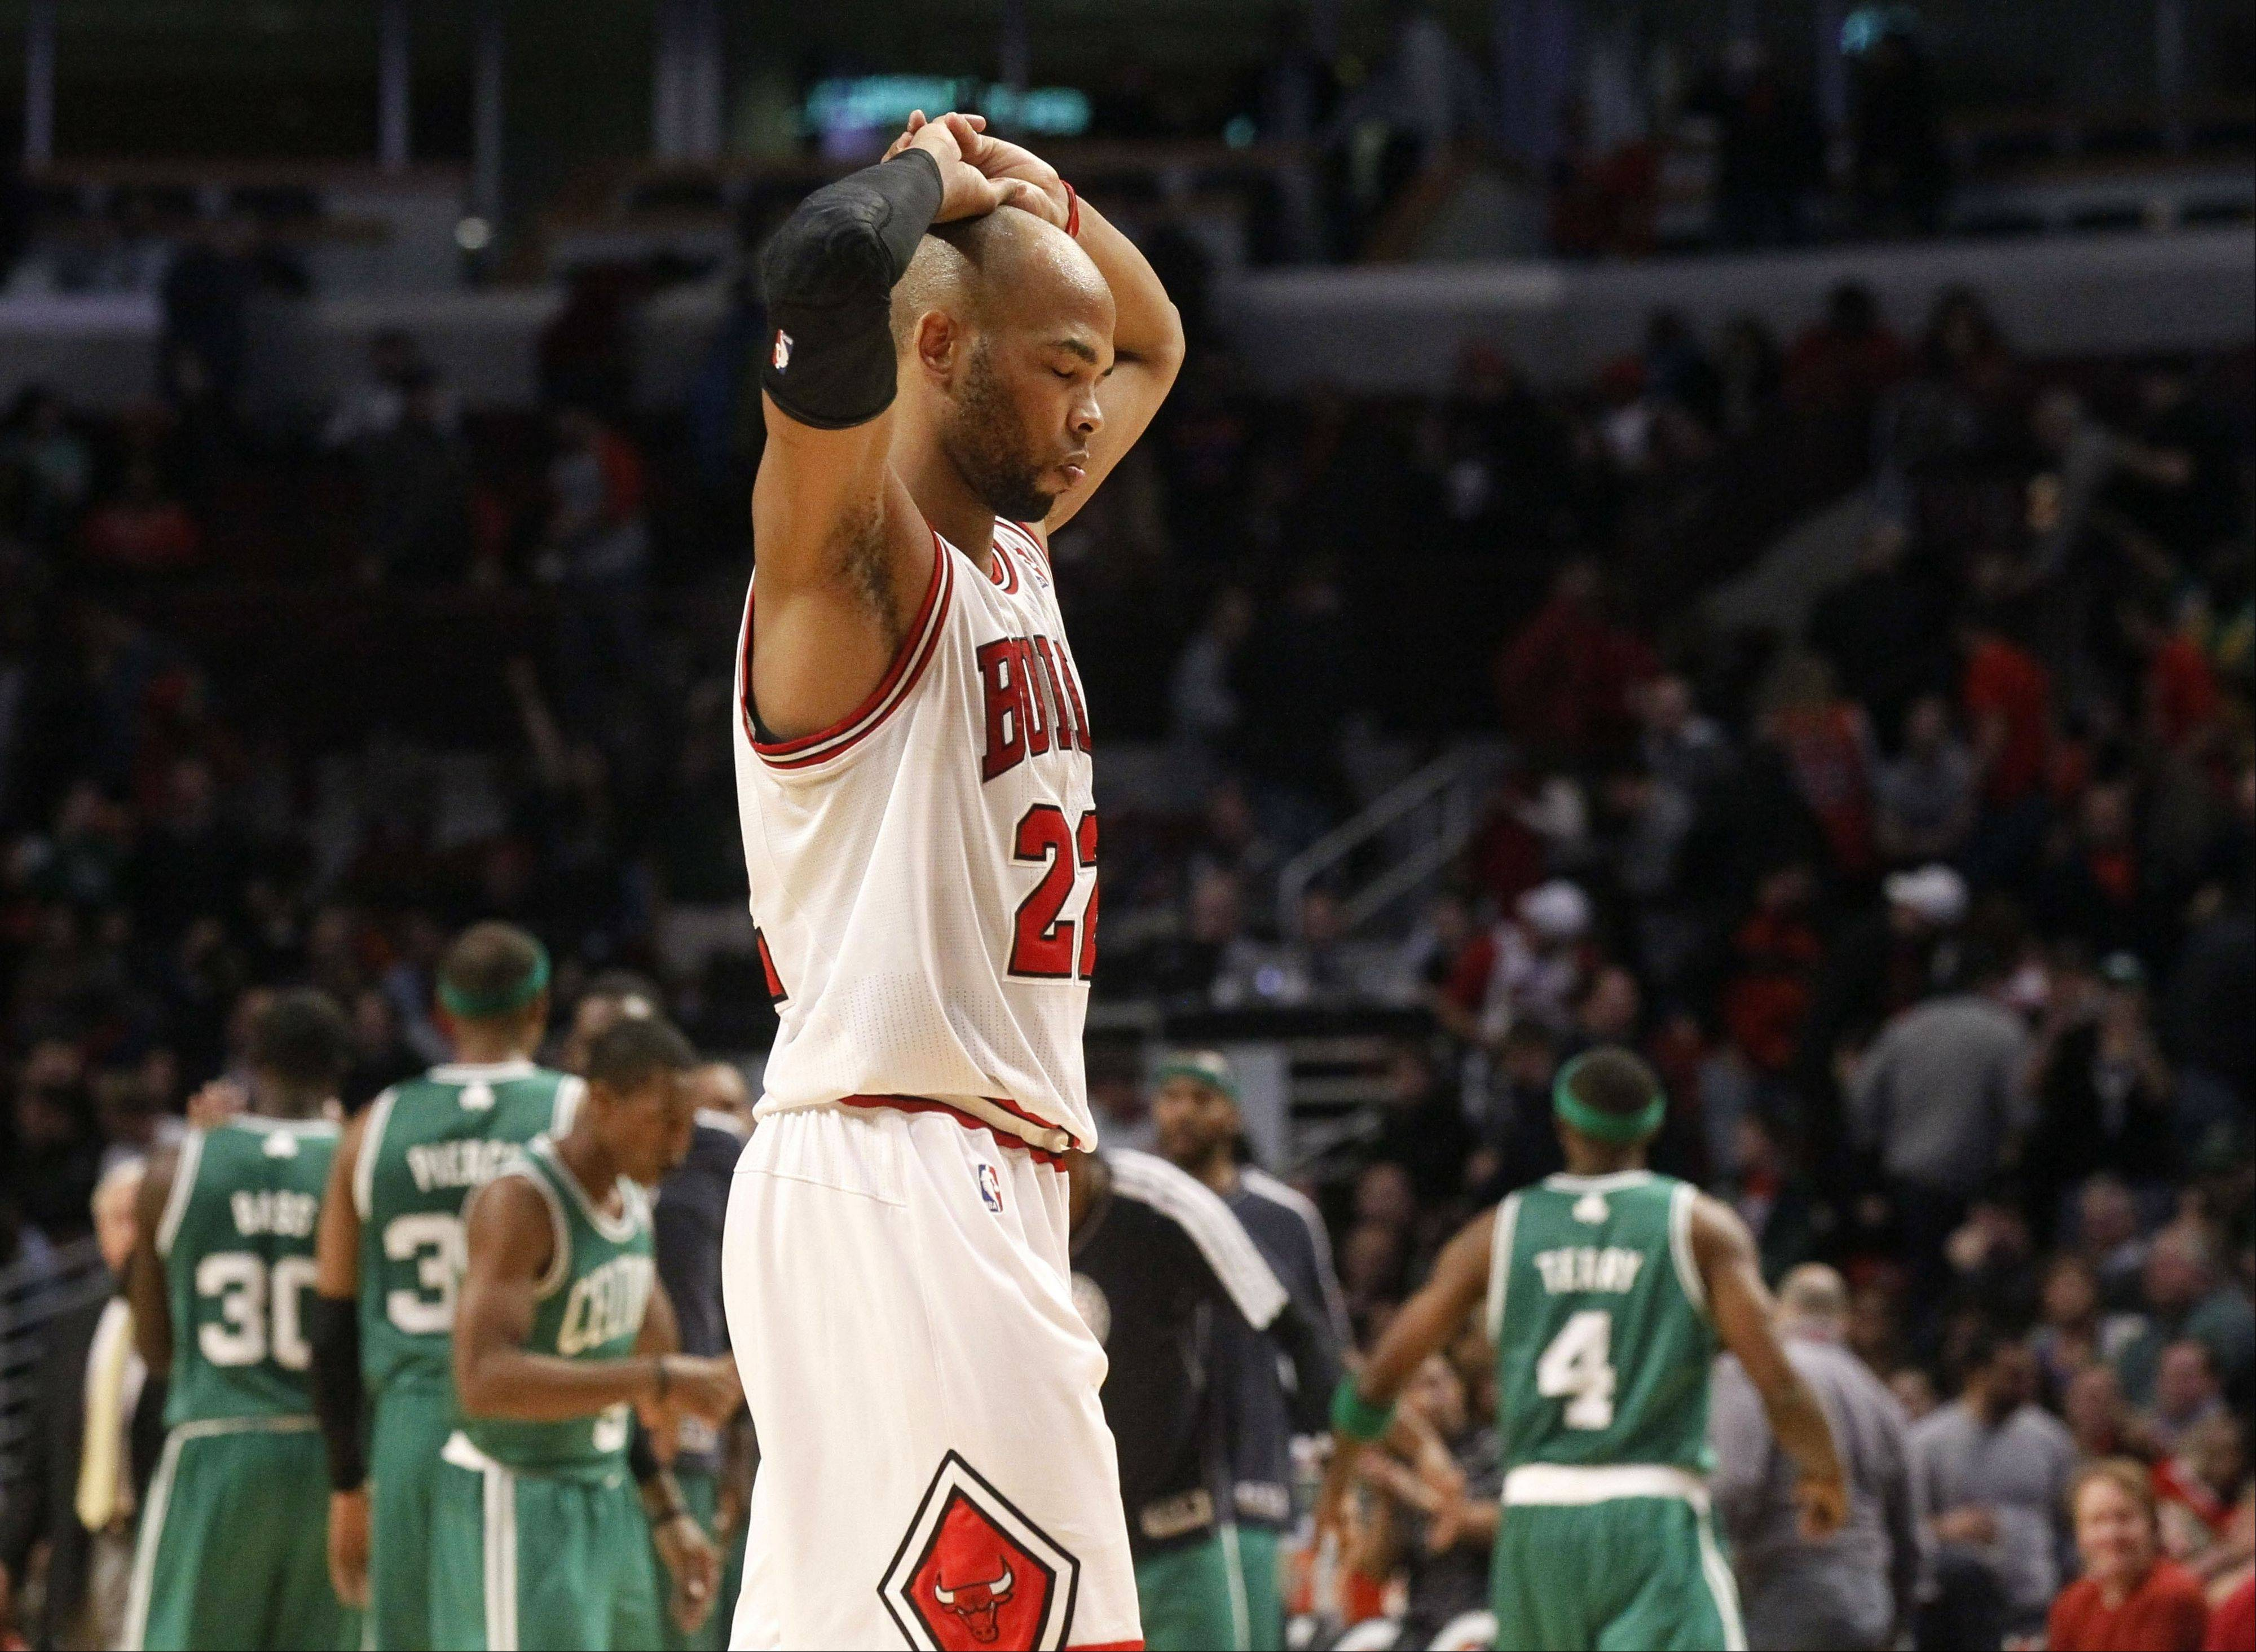 Bulls forward Taj Gibson walks back to the bench during a timeout during the closing seconds of Monday night�s loss.